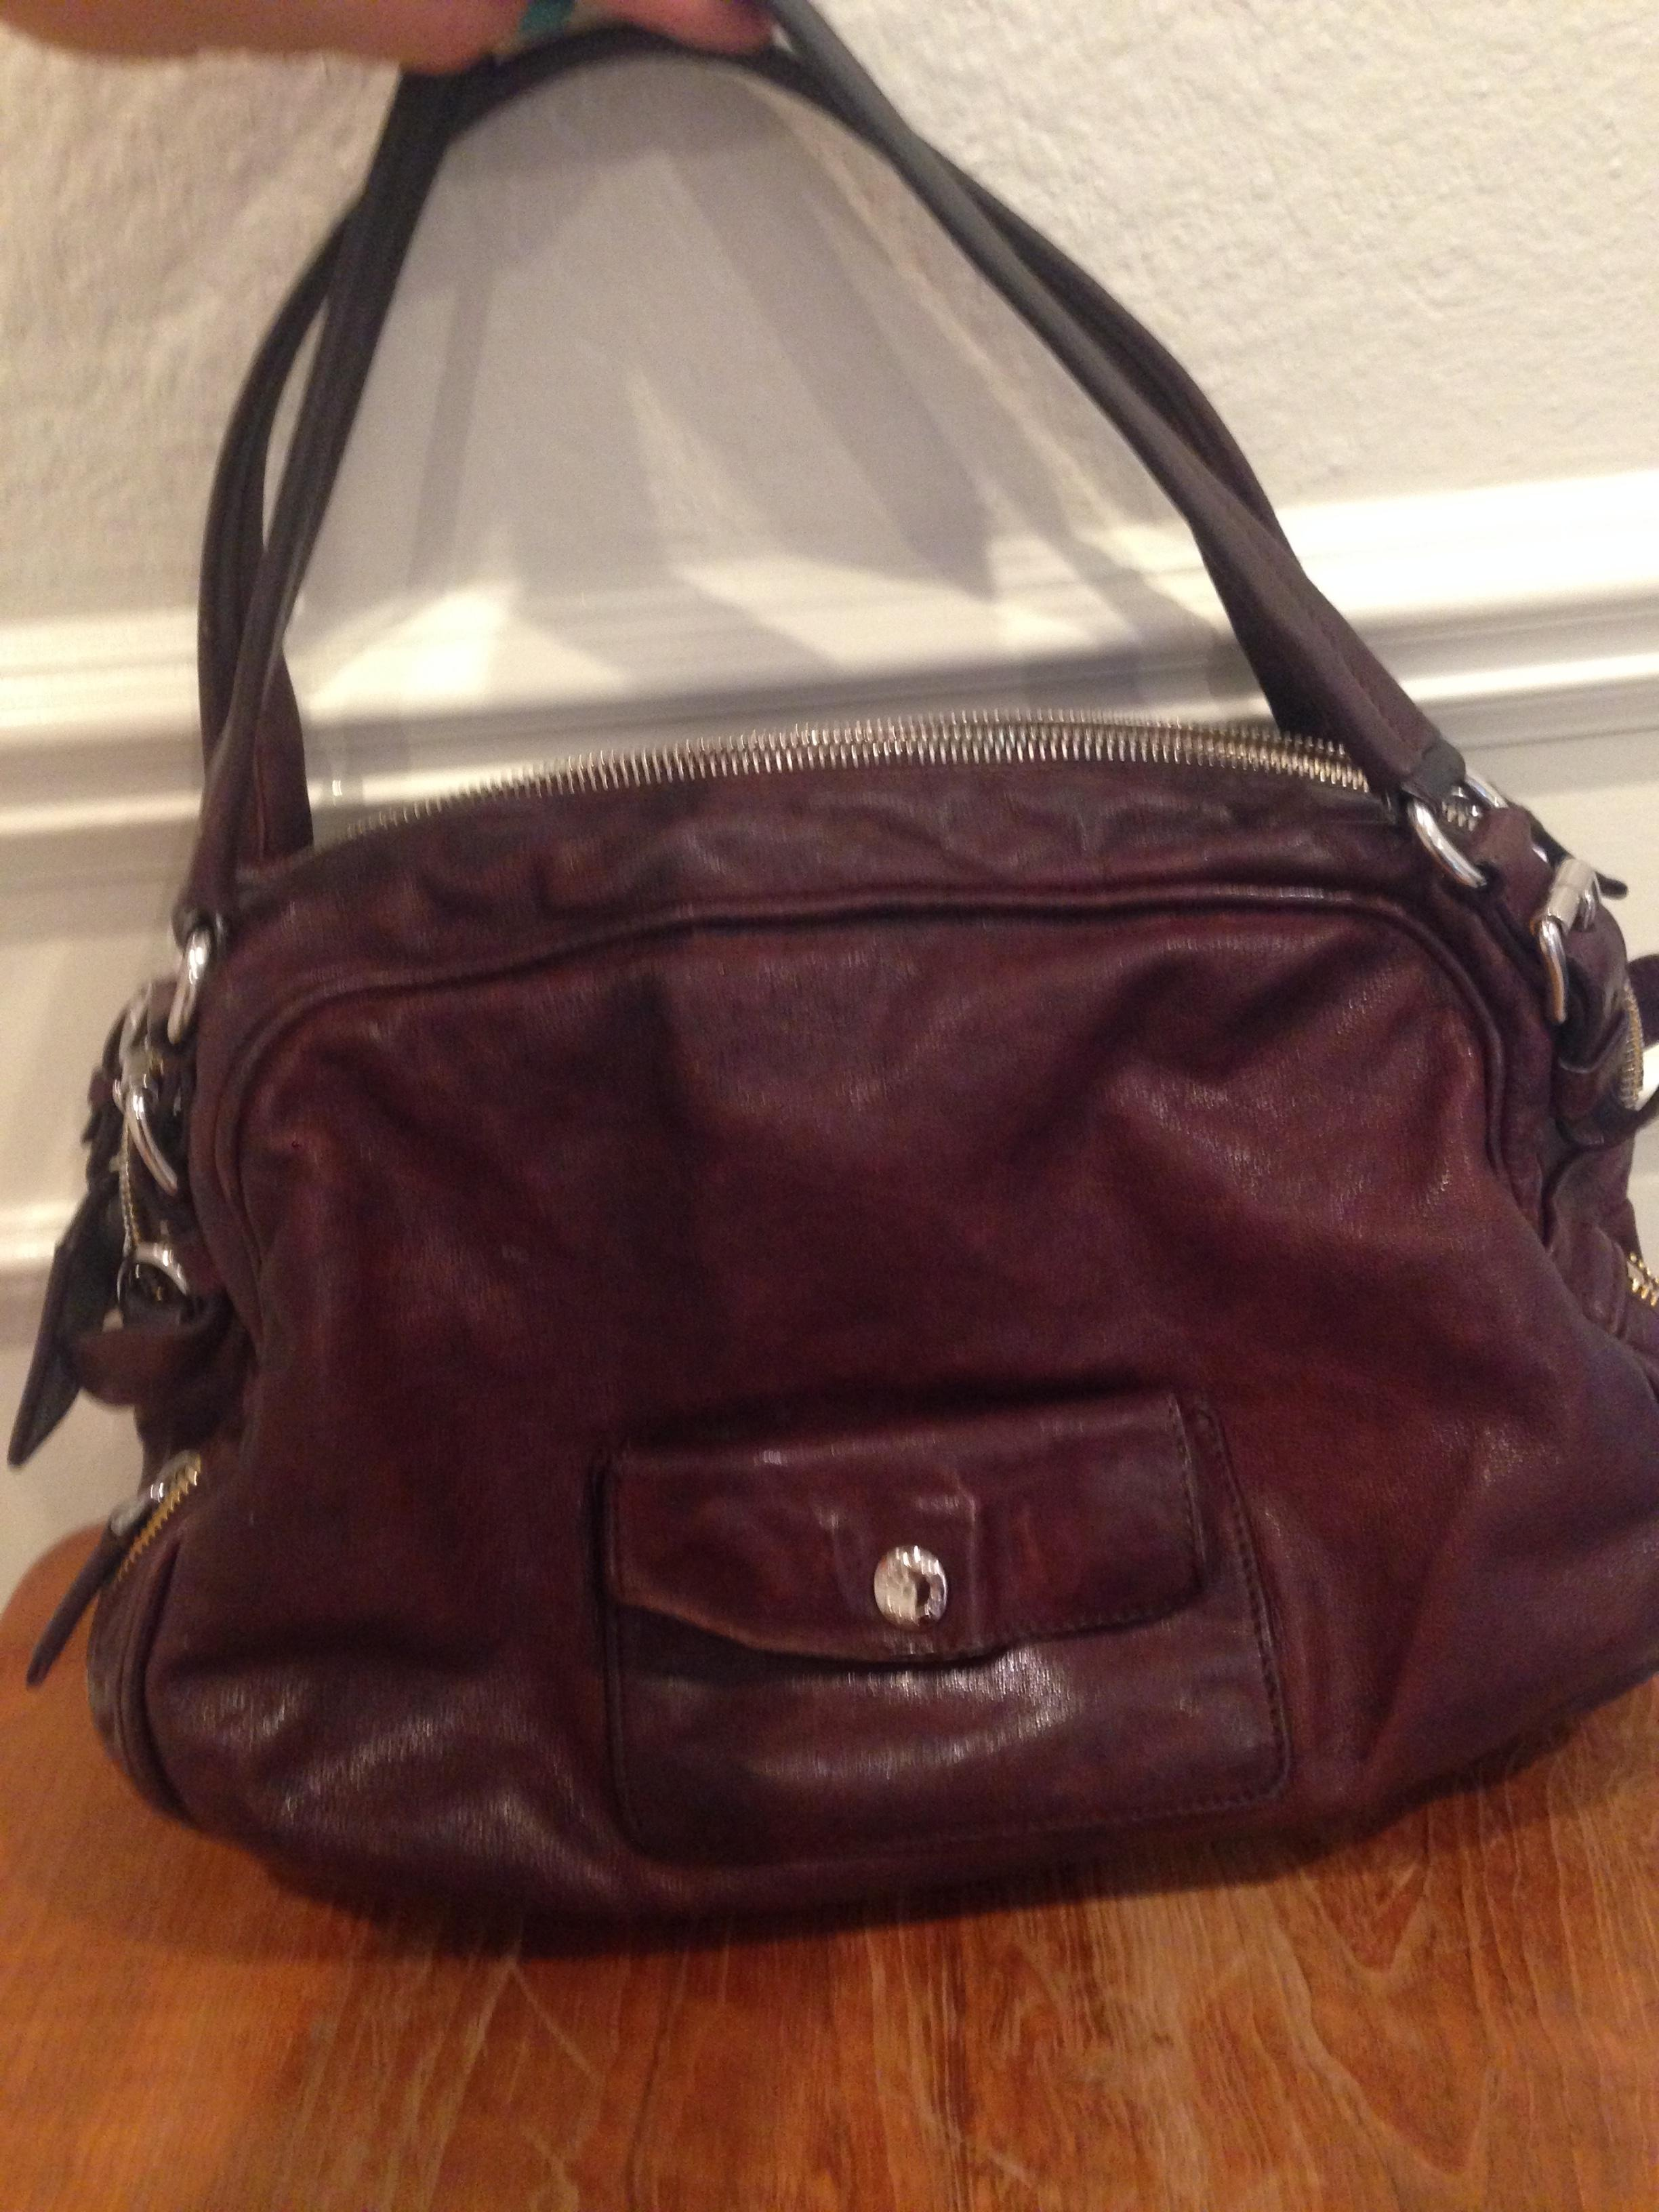 448f0778ccba25 ... czech prada price reduced buffalo leather tote stunning bowler satchel  in brown. 1234567 a118d 02e8c